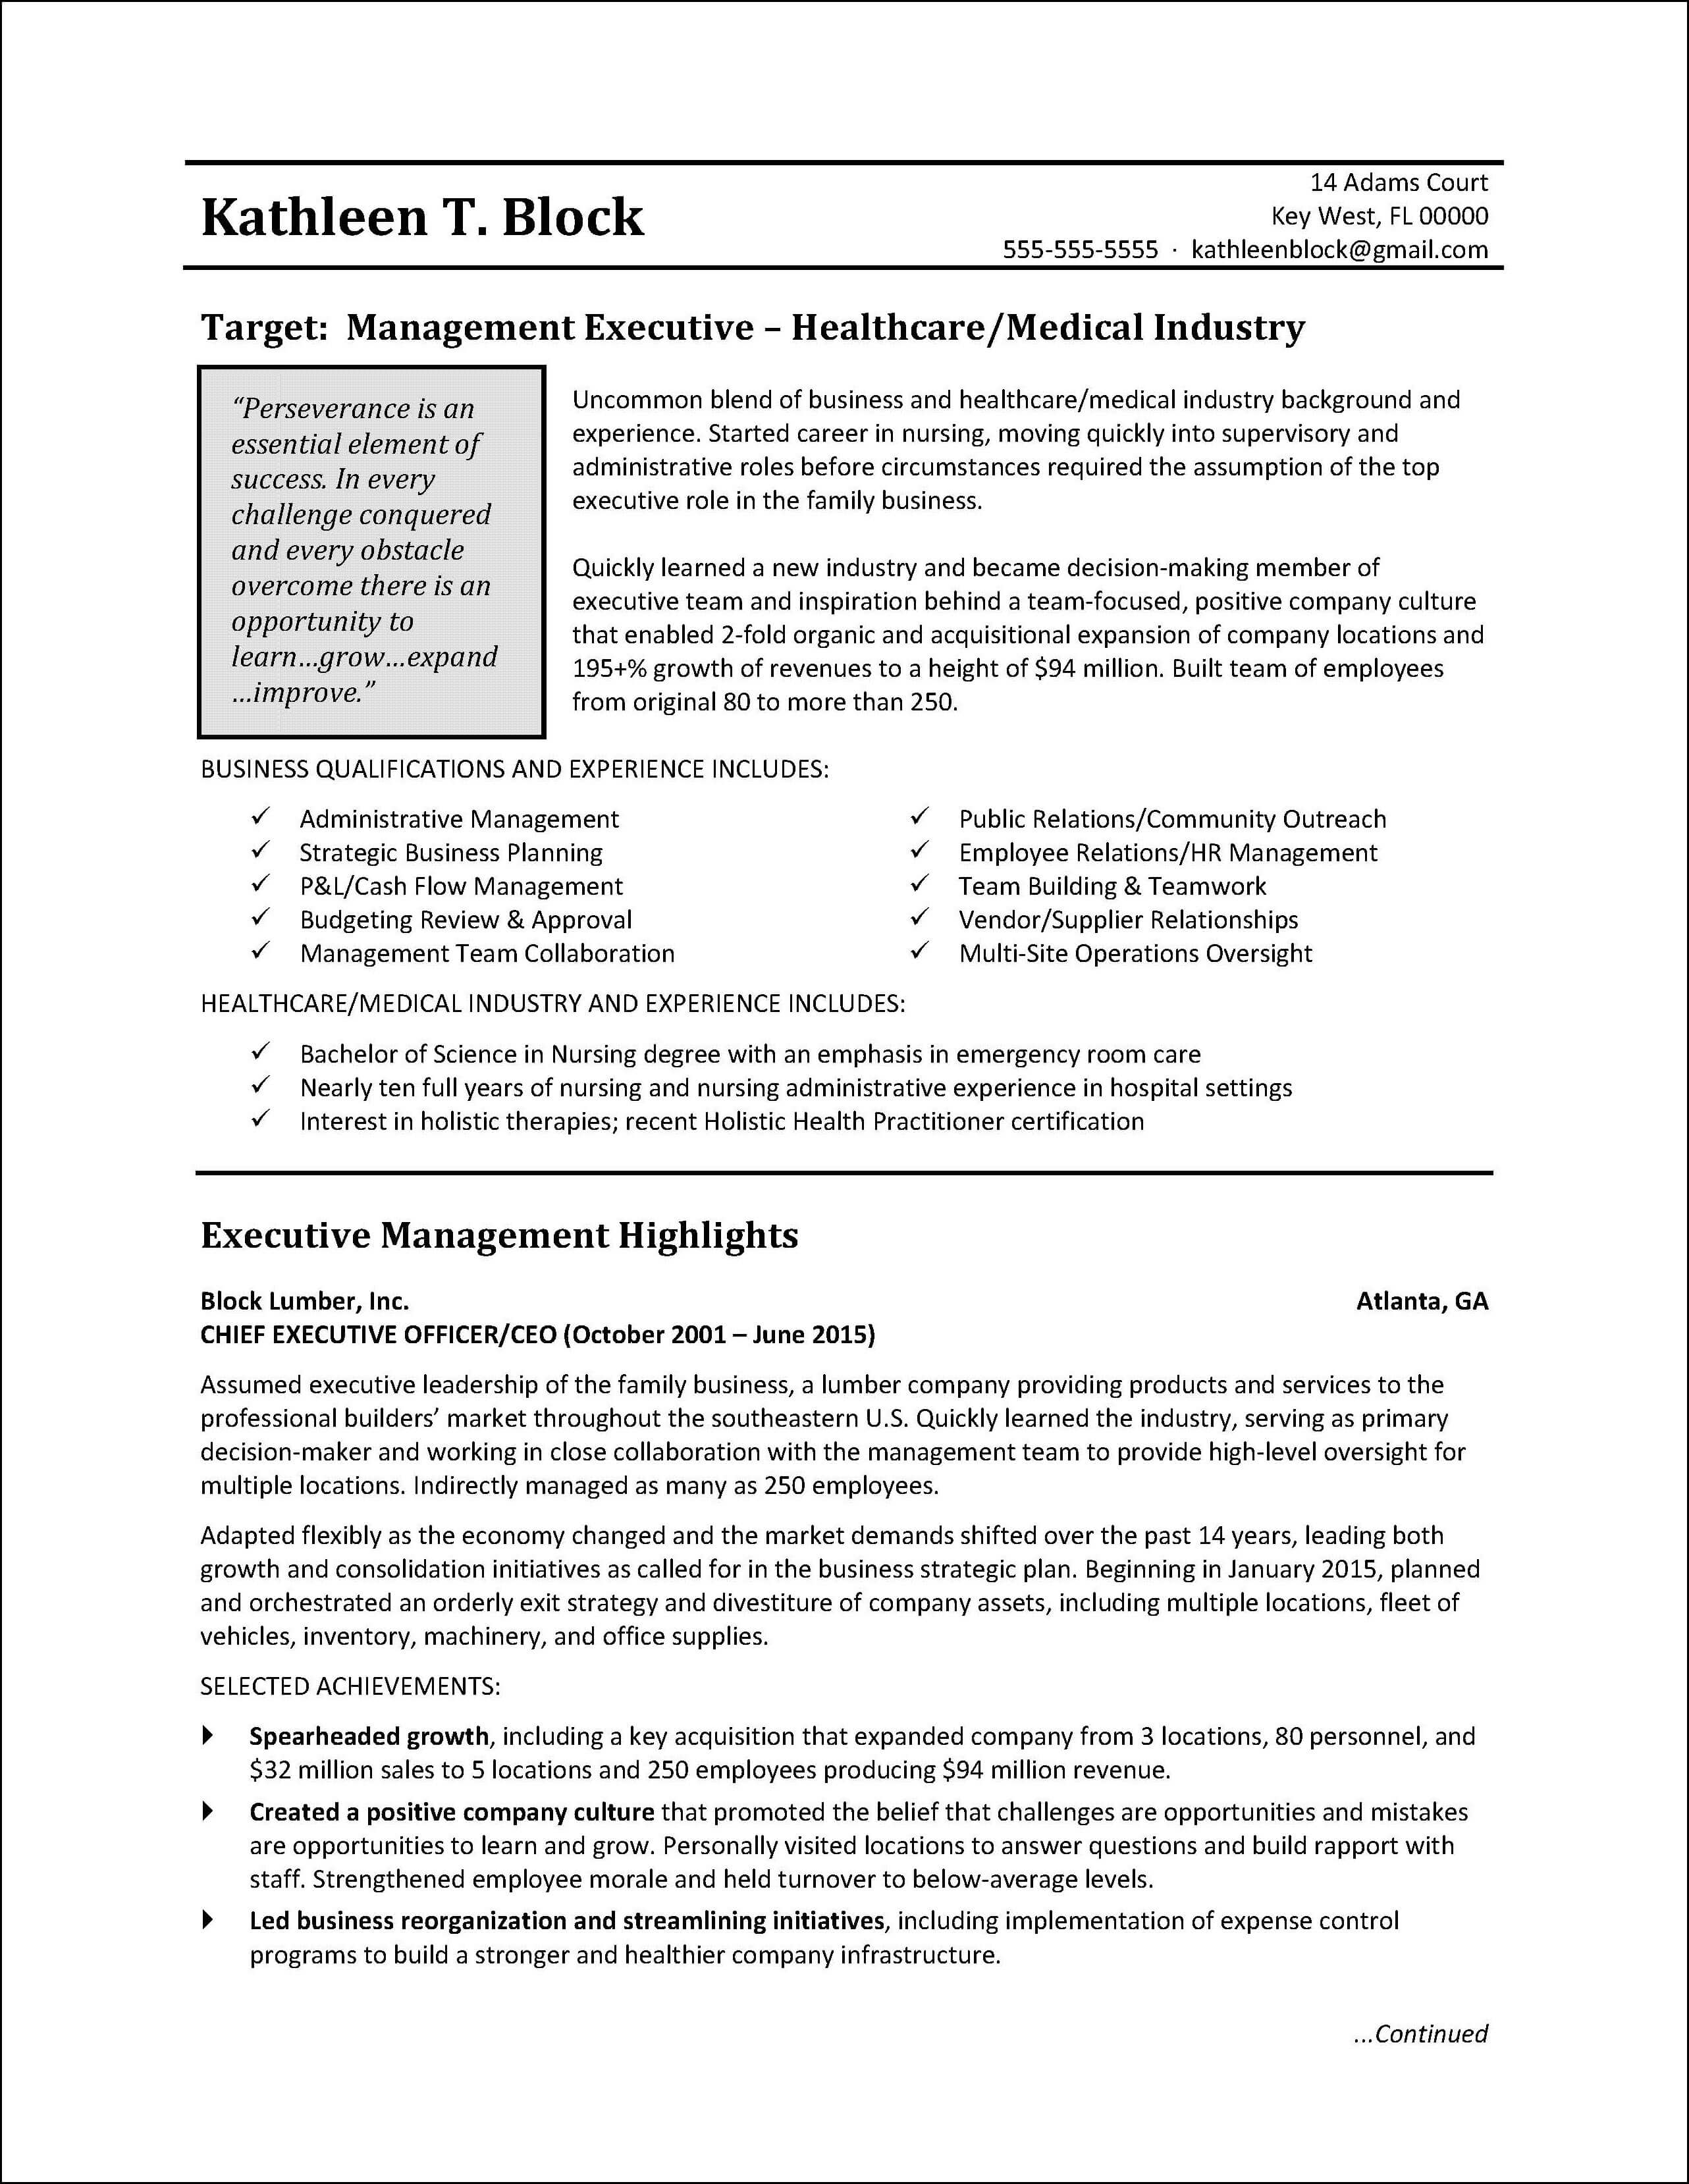 resume tips for former business owners to land corporate job listing self employment on Resume Listing Self Employment On Resume